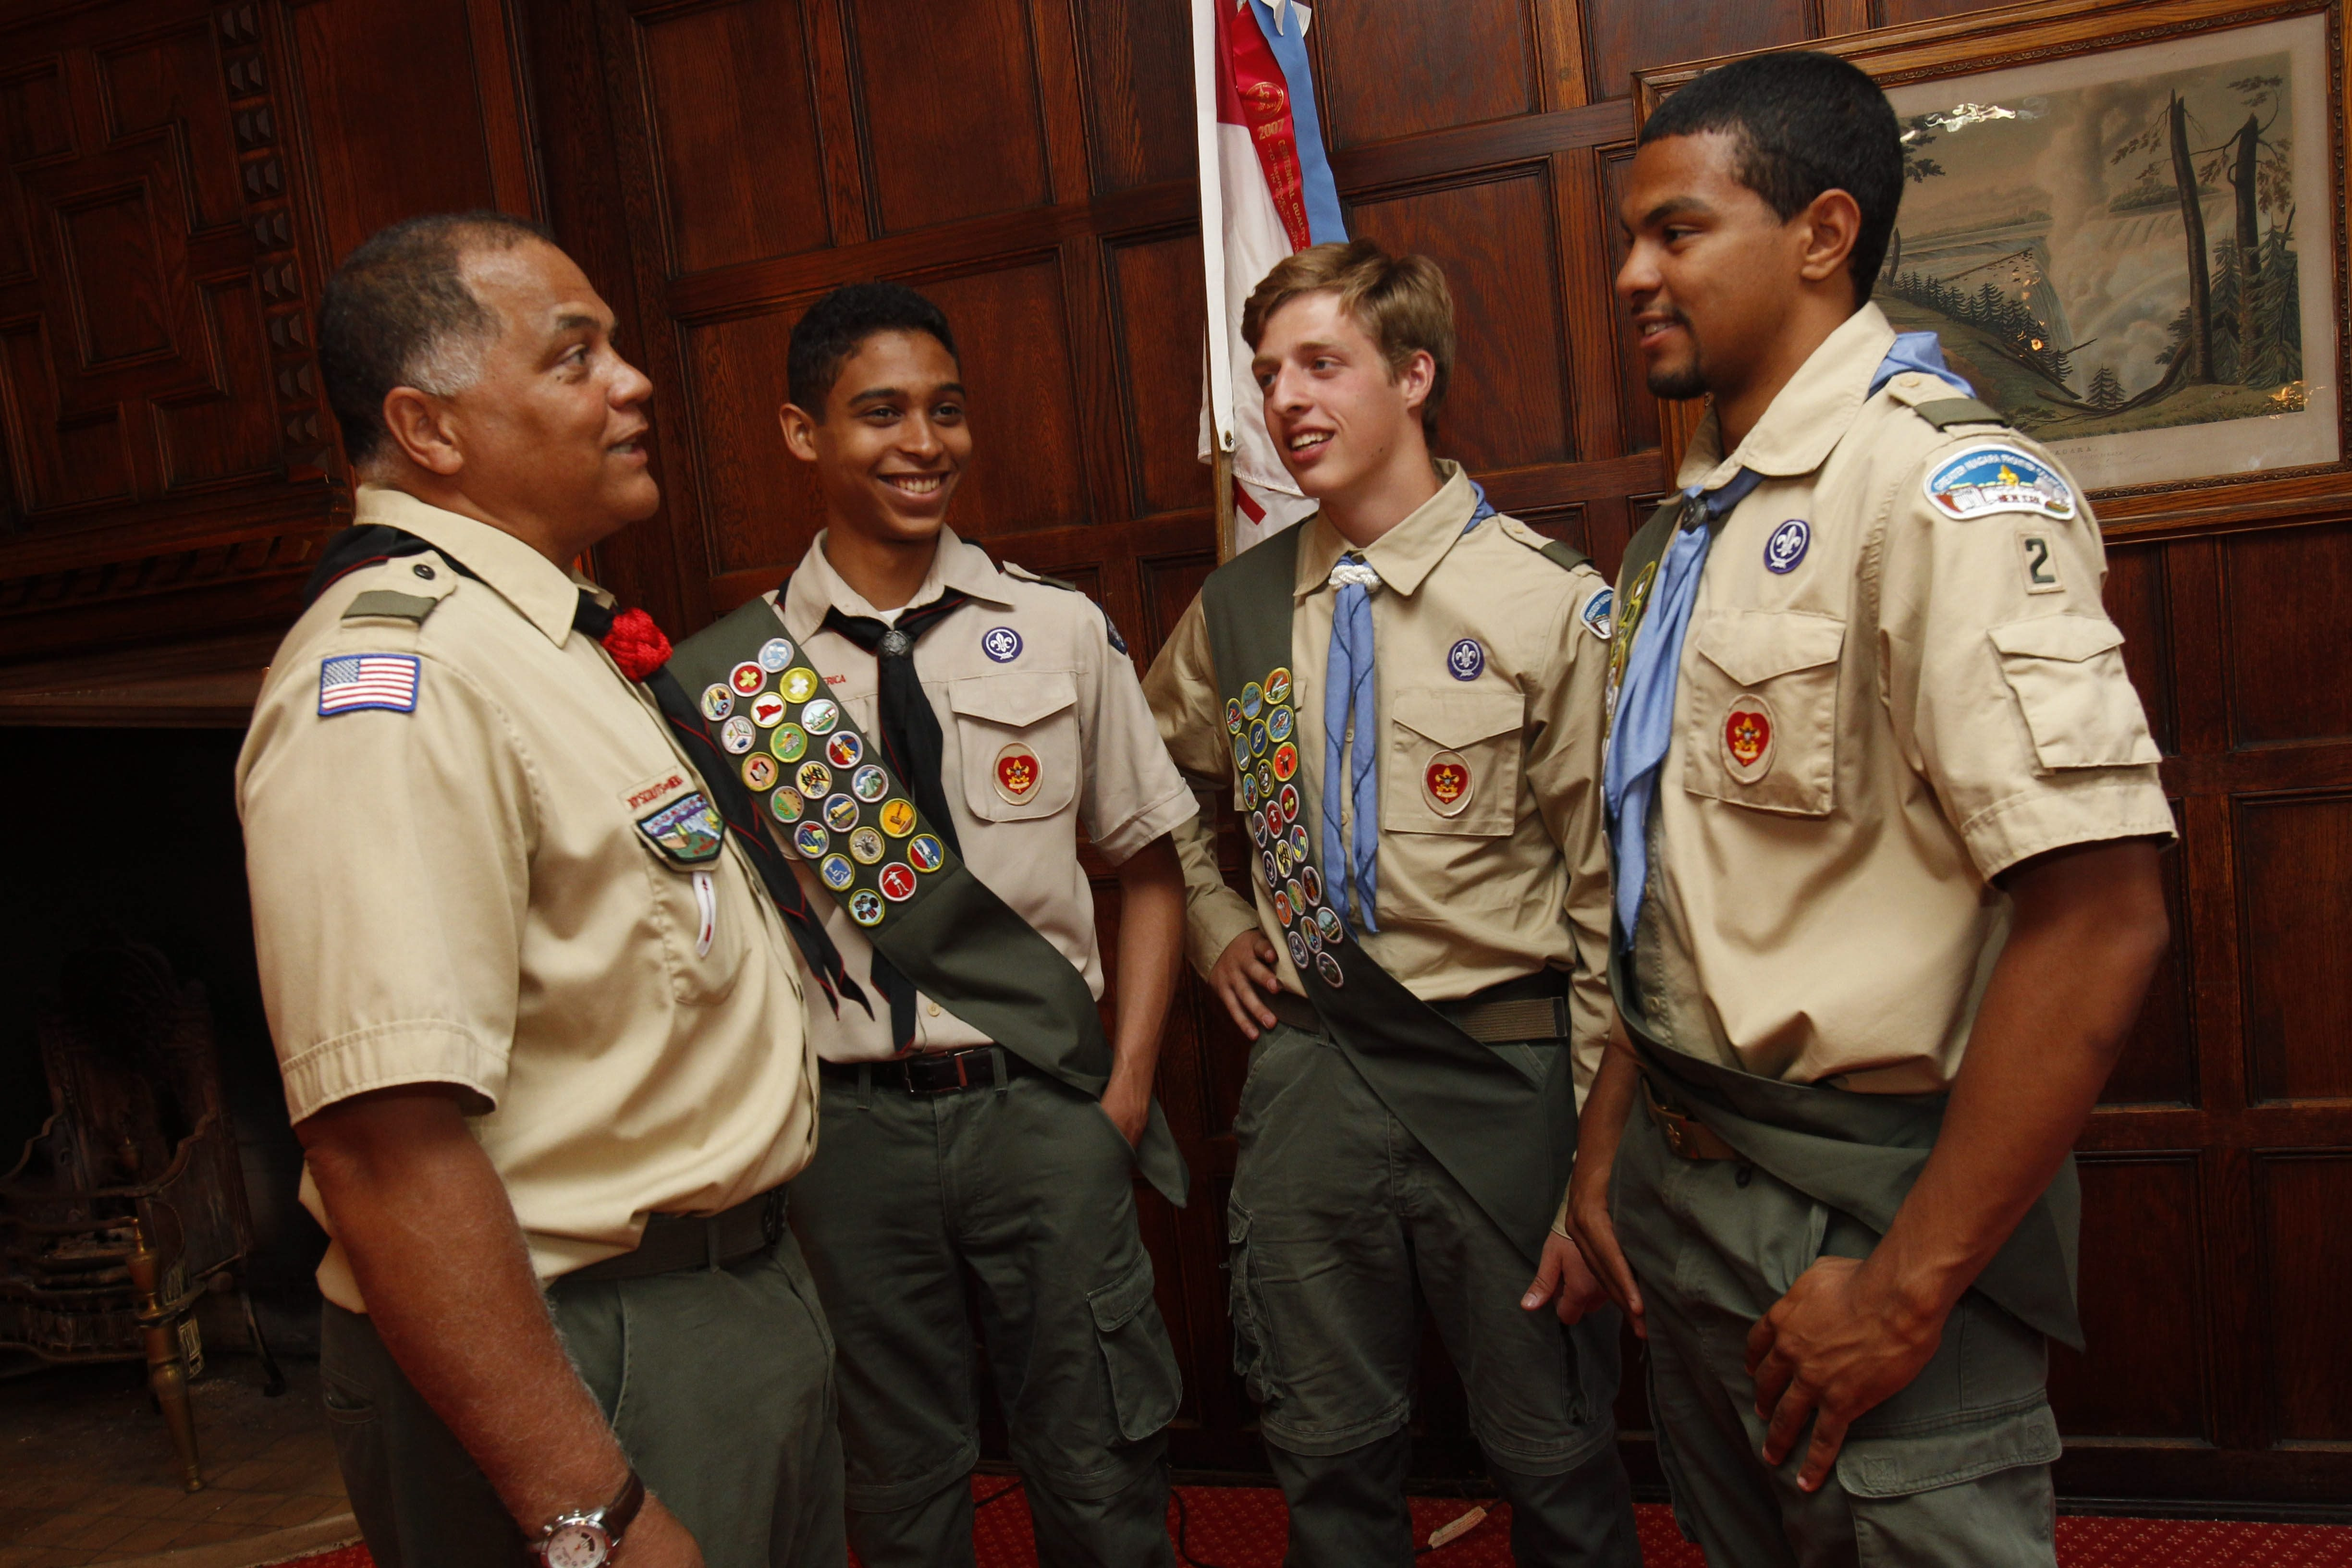 Troop 2 Scoutmaster Edward Hughes, left, speaks with Luis Castro, Michael Cornacchio and his son Evan Hughes before they received their Eagle Scout badges at a ceremony at The Saturn Club on Saturday.